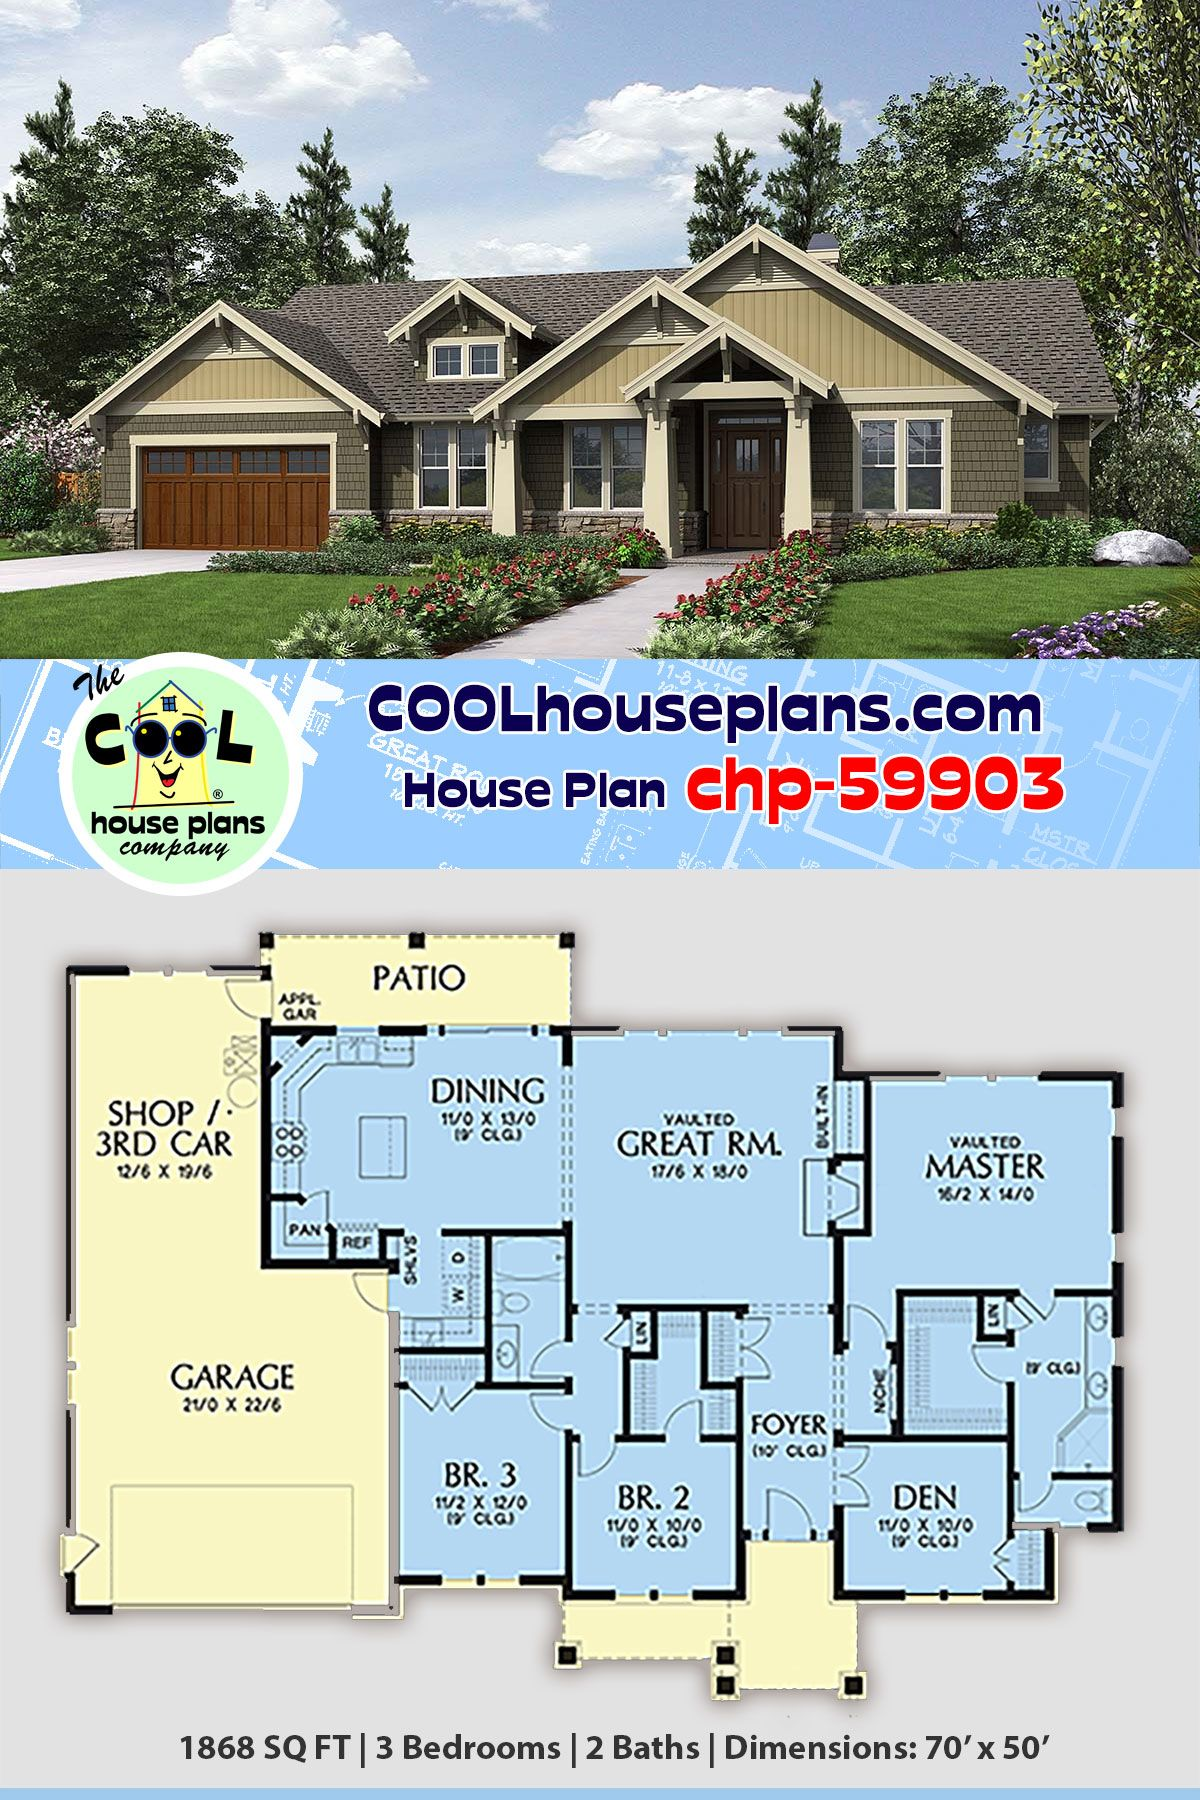 Craftsman Style House Plan 81206 With 3 Bed 2 Bath 2 Car Garage House Plans Craftsman Style House Plans Cabin House Plans